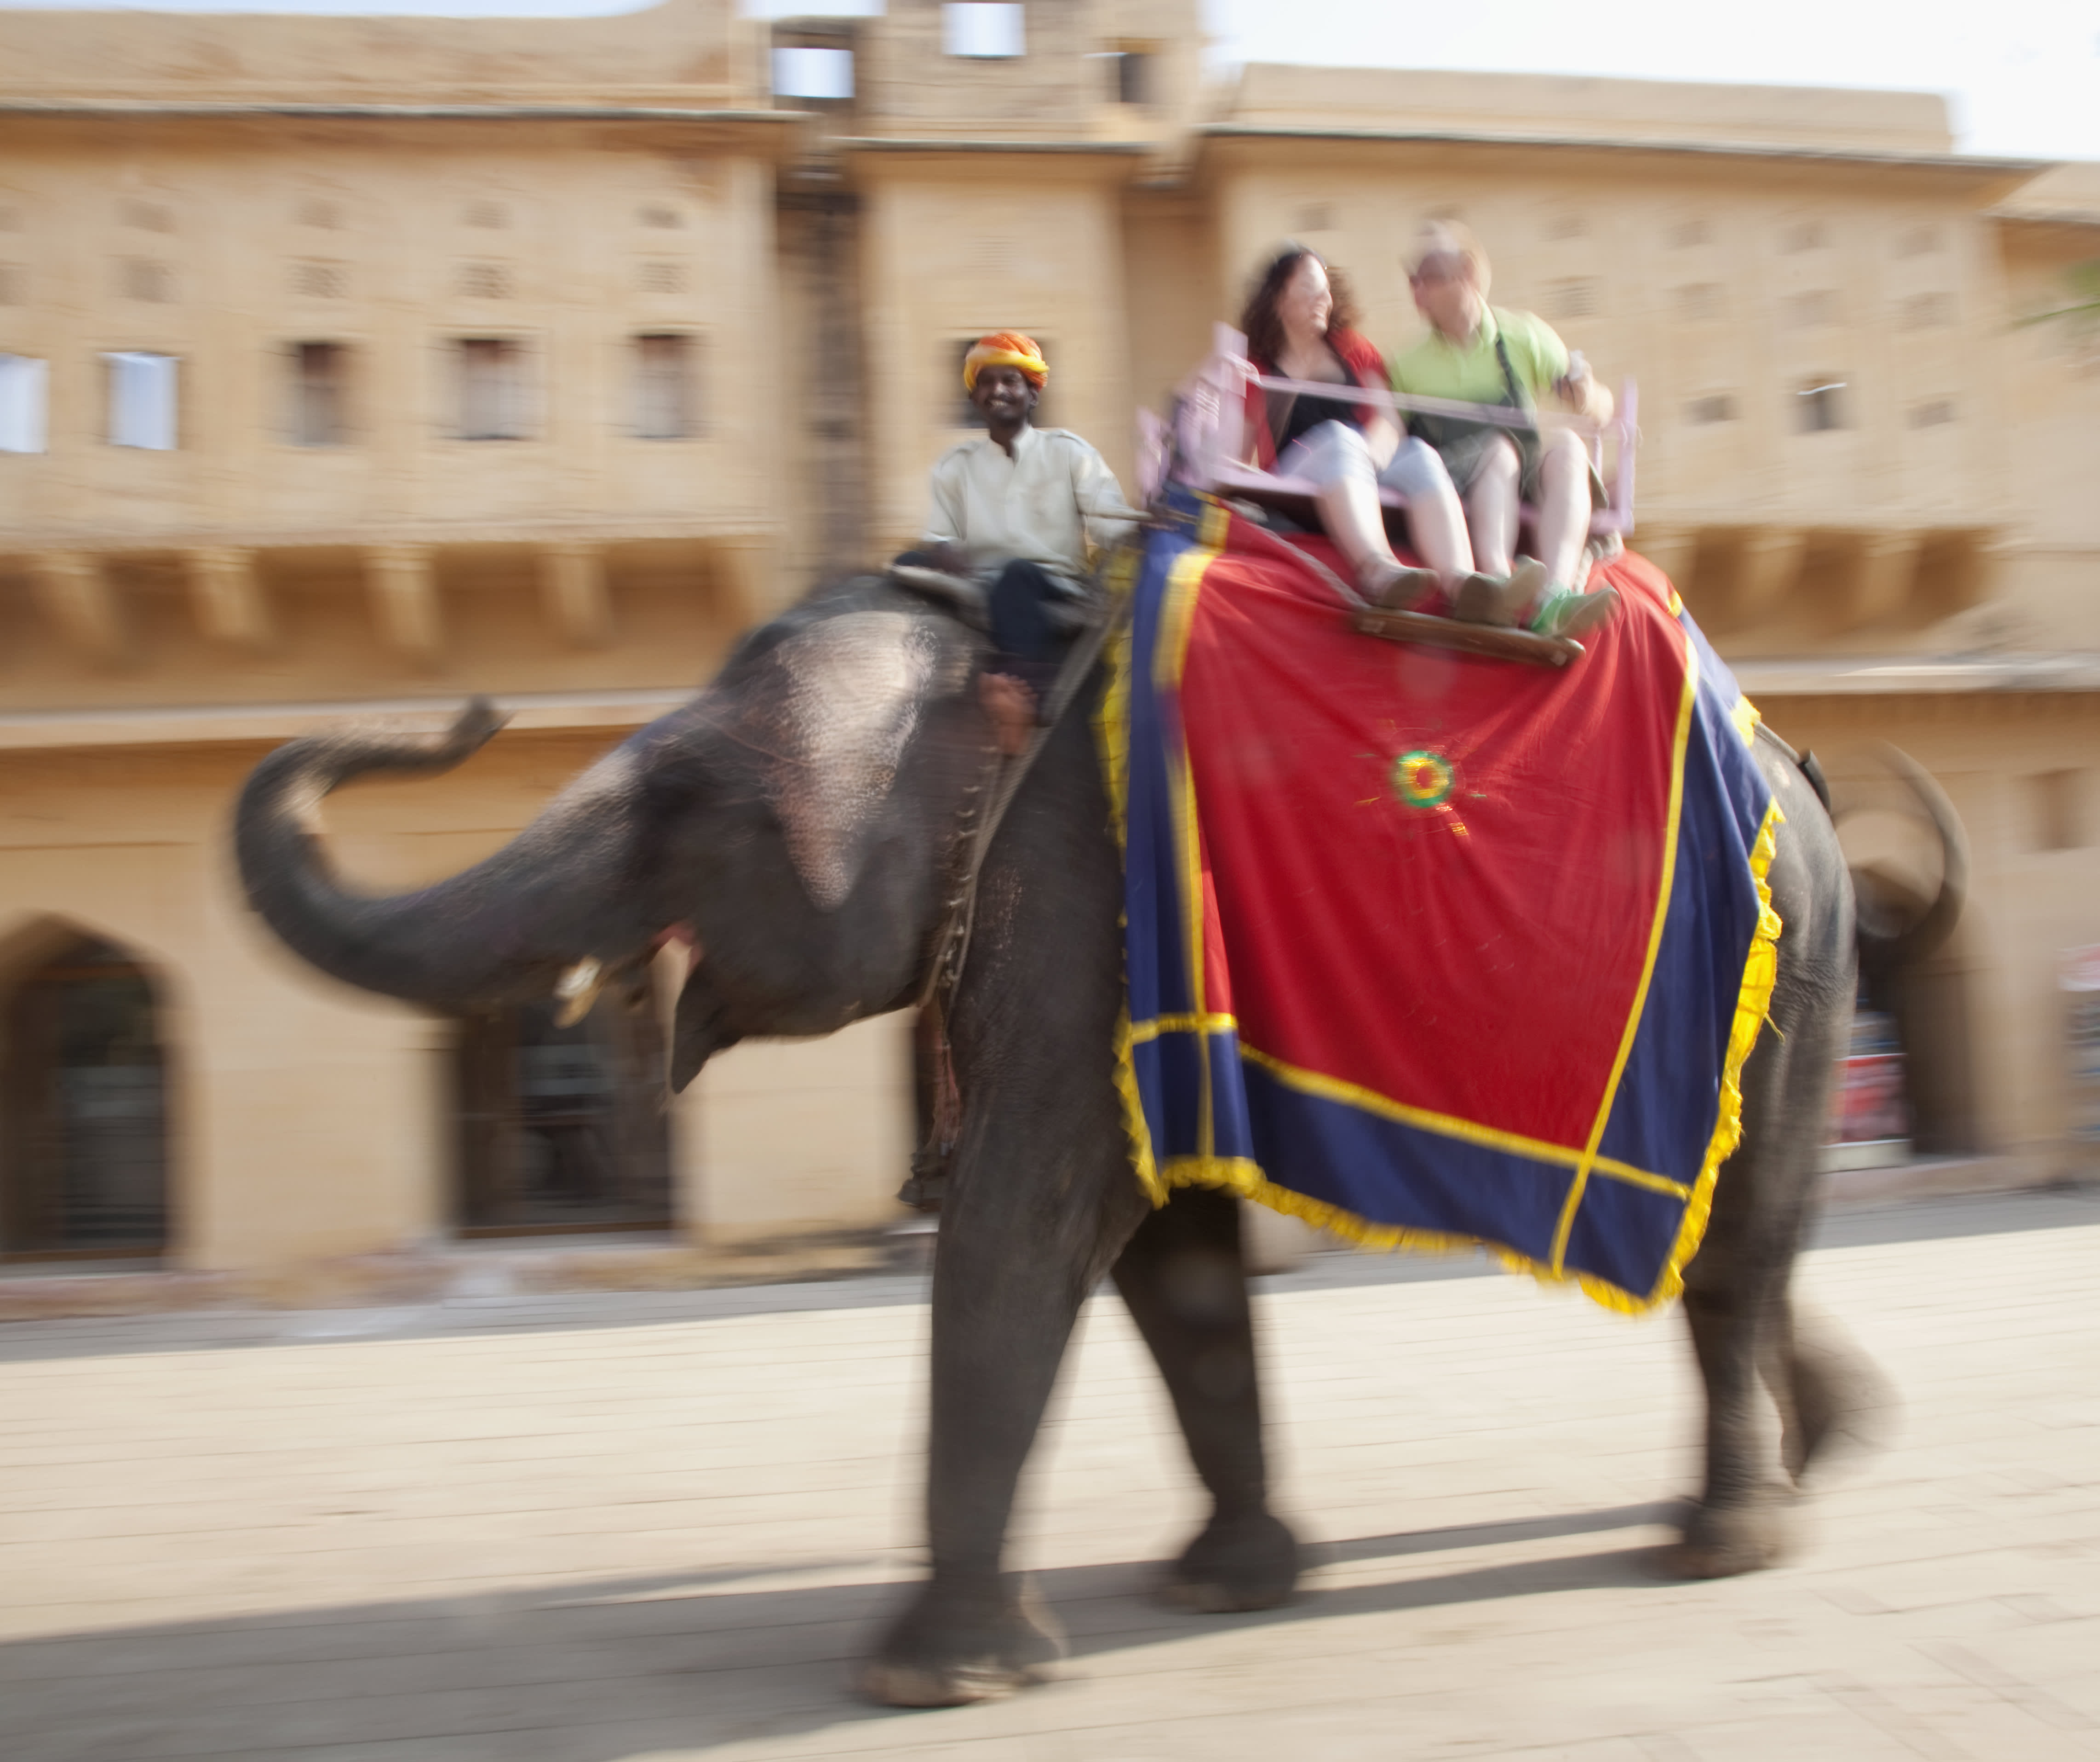 Riding elephants and other mistakes seasoned travelers are still making